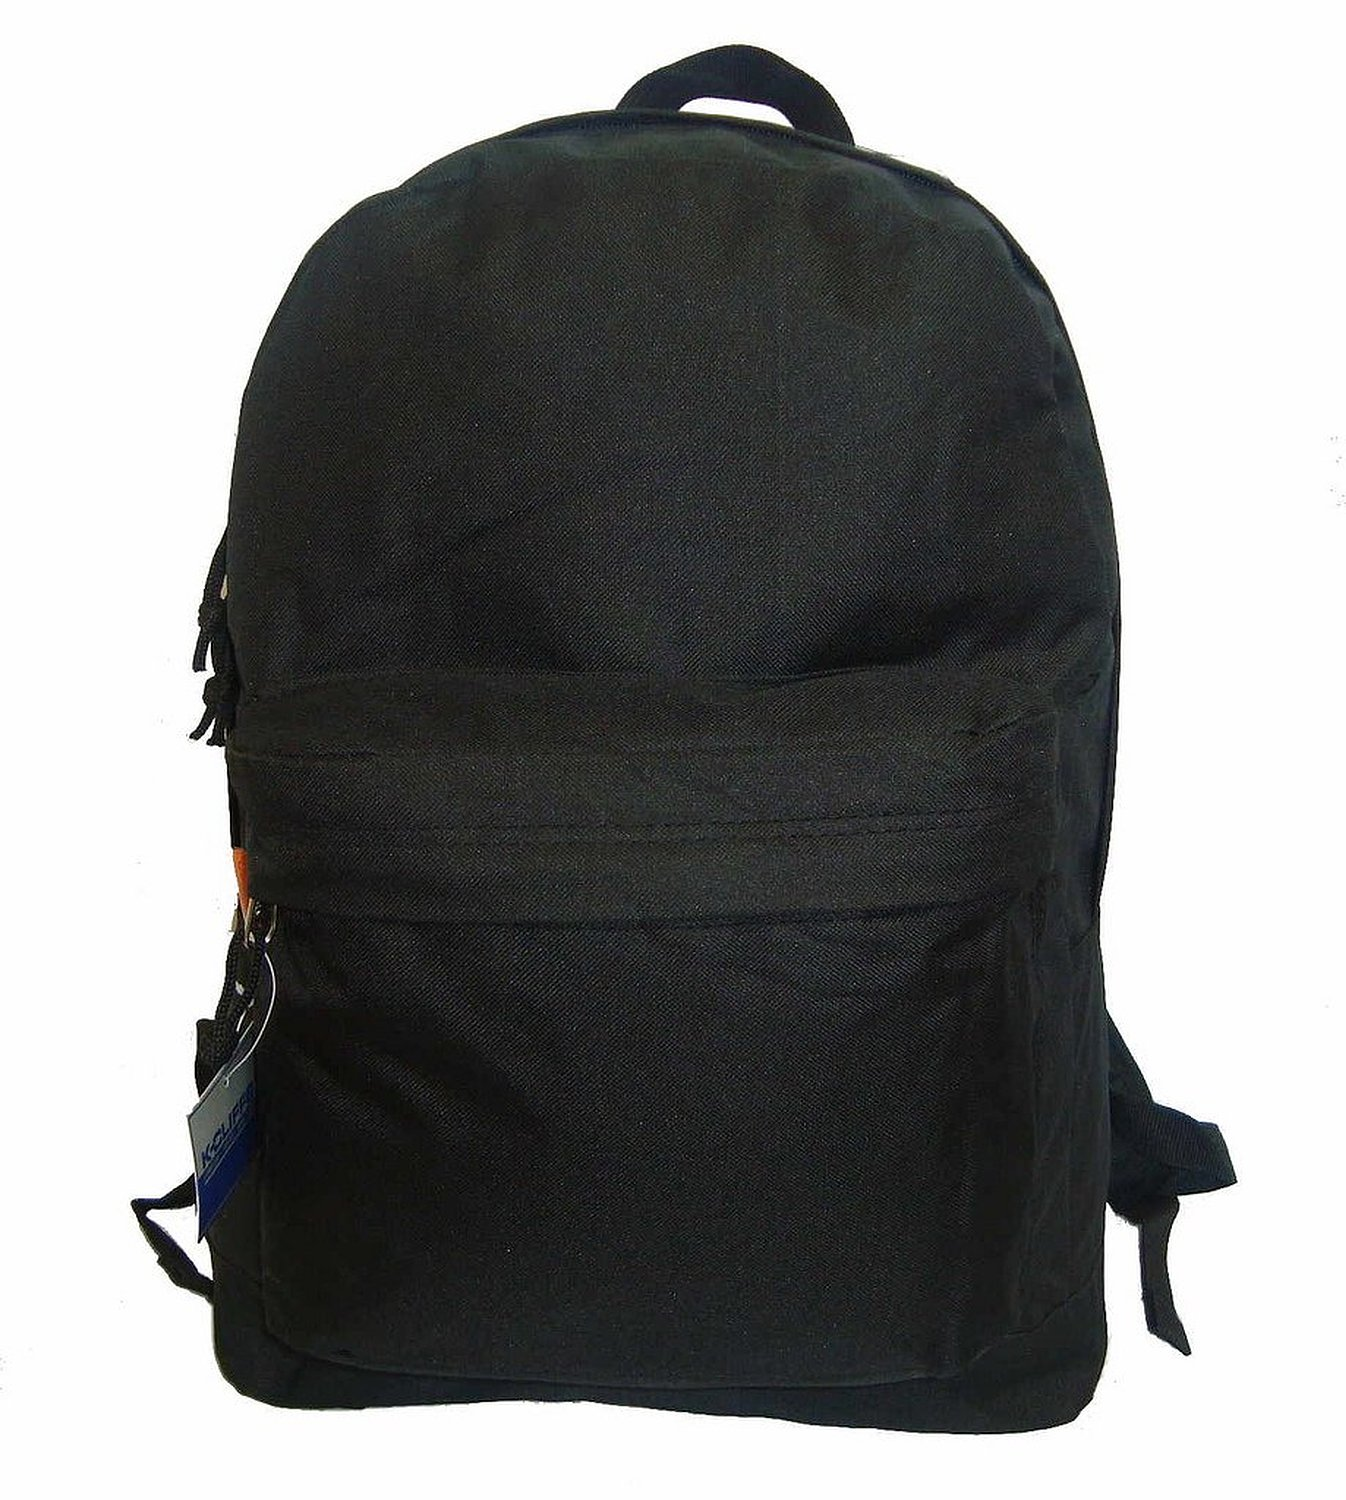 3f5e3ba7c Get Quotations · Classic Bookbag Basic Backpack School Bookbag Student  Simple Emergency Survival Daypack